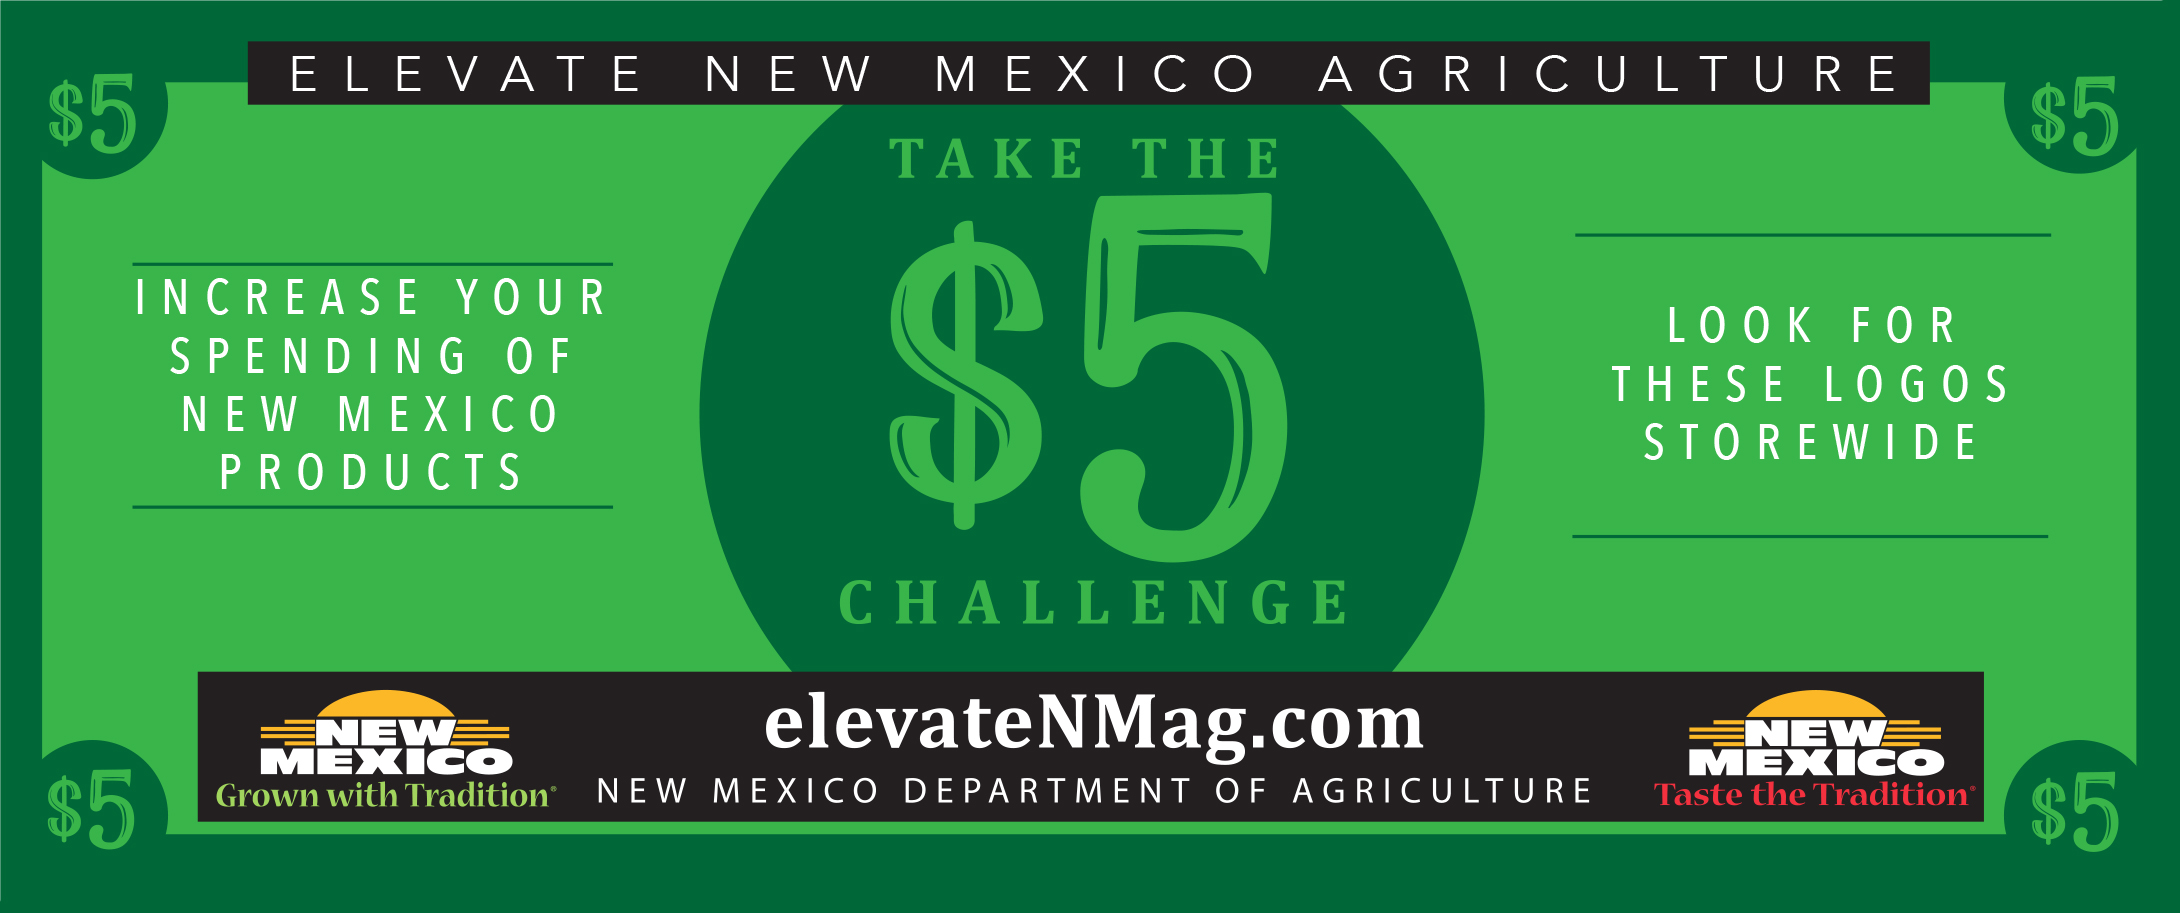 elevate new mexico agriculture, take the five dollar challenge